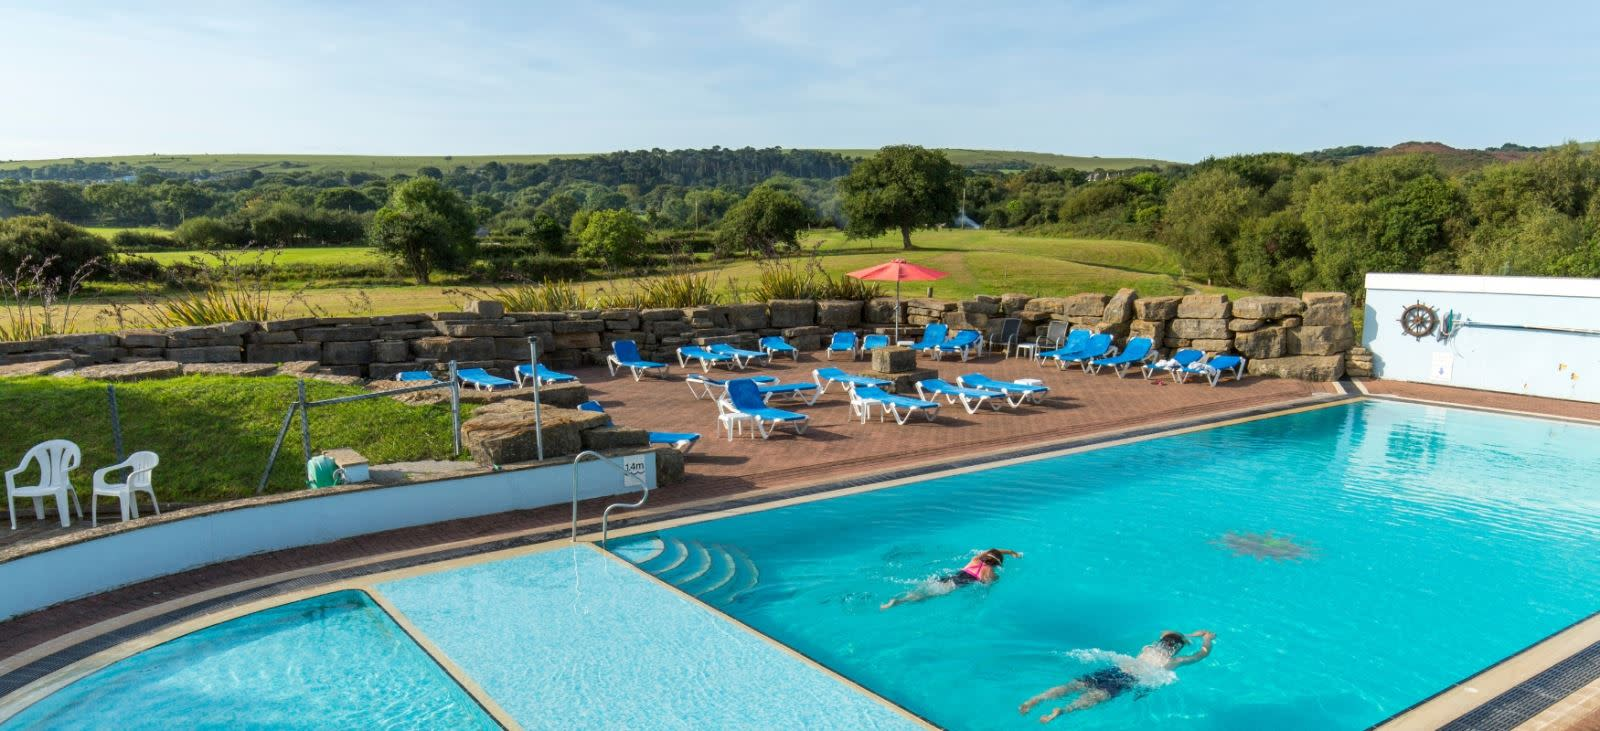 Outdoor swimming pool at Knoll House Hotel, Dorset